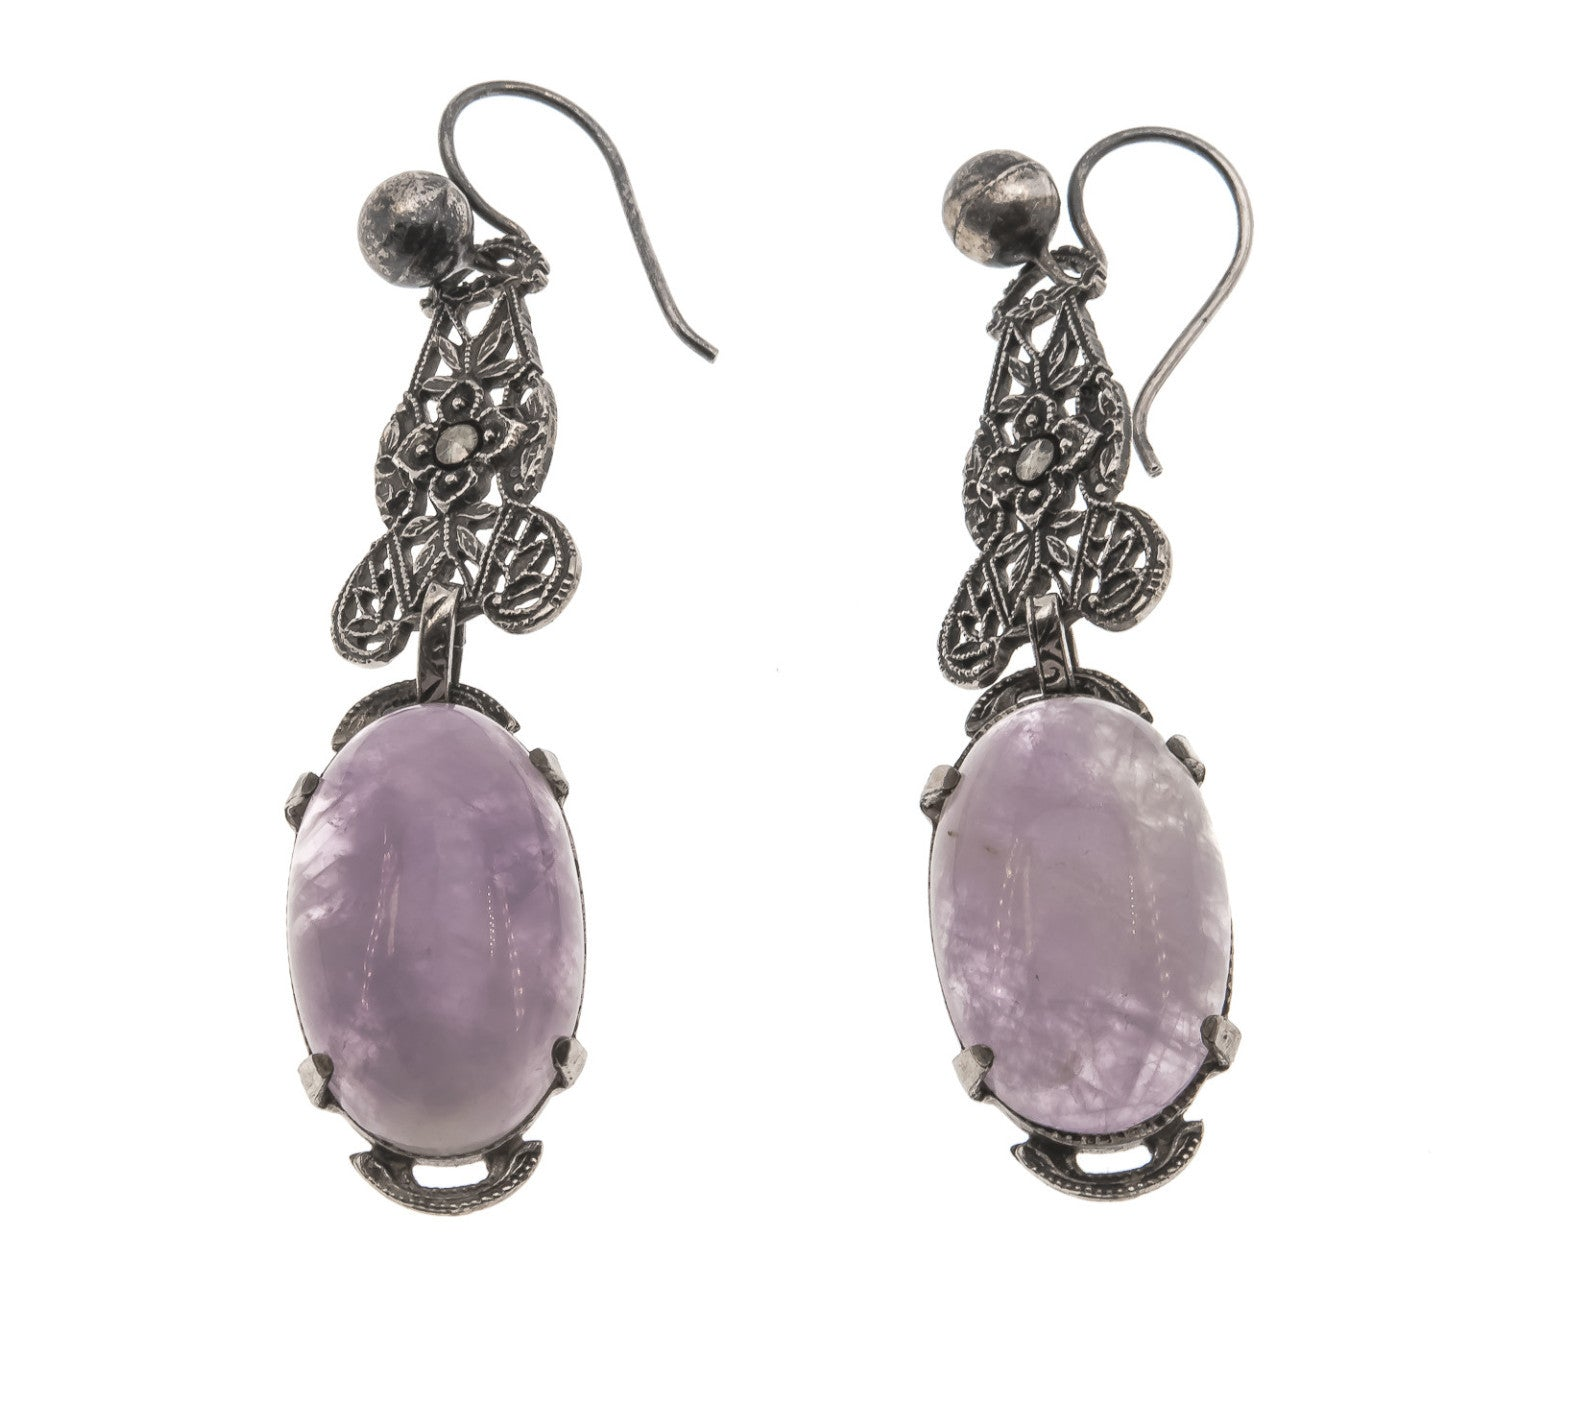 Lavender Dreams - Edwardian Sterling Silver Lavender Jade & Marcasite Earrings (EDE011)